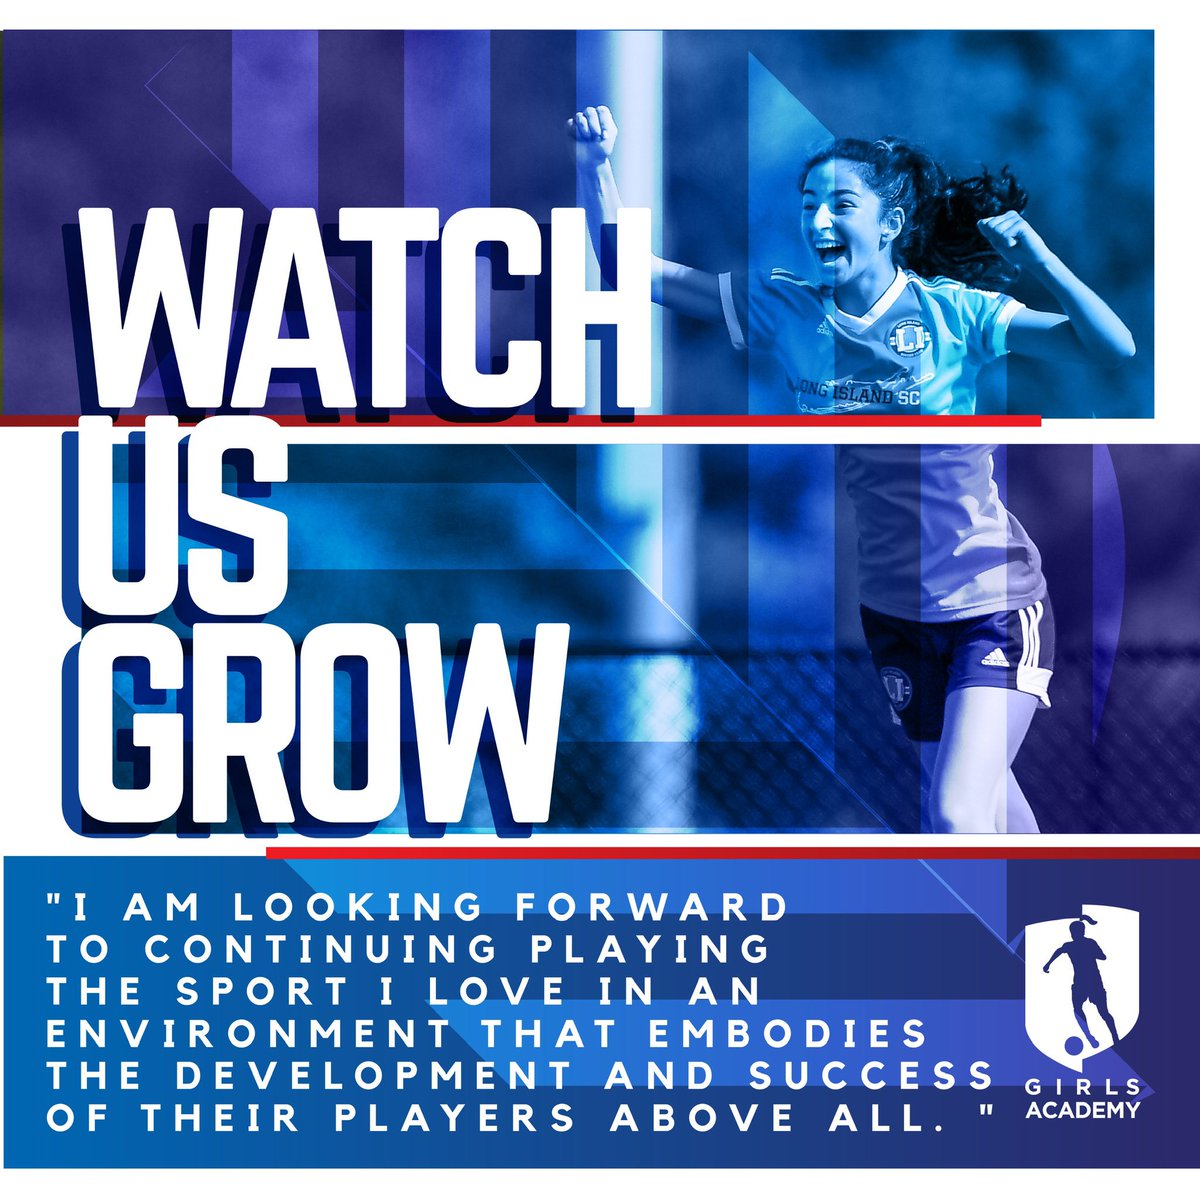 Our players are getting ready. As part of our Player engagement process we are hearing what our players feel and think about our league. We can't wait to watch our players grow!! #GAWTP #BYUSFORUS #OURJOURNEY #OURLEAGUE #WATCHUSGROW #WEGOTTHIS https://t.co/mRUewSbyFQ